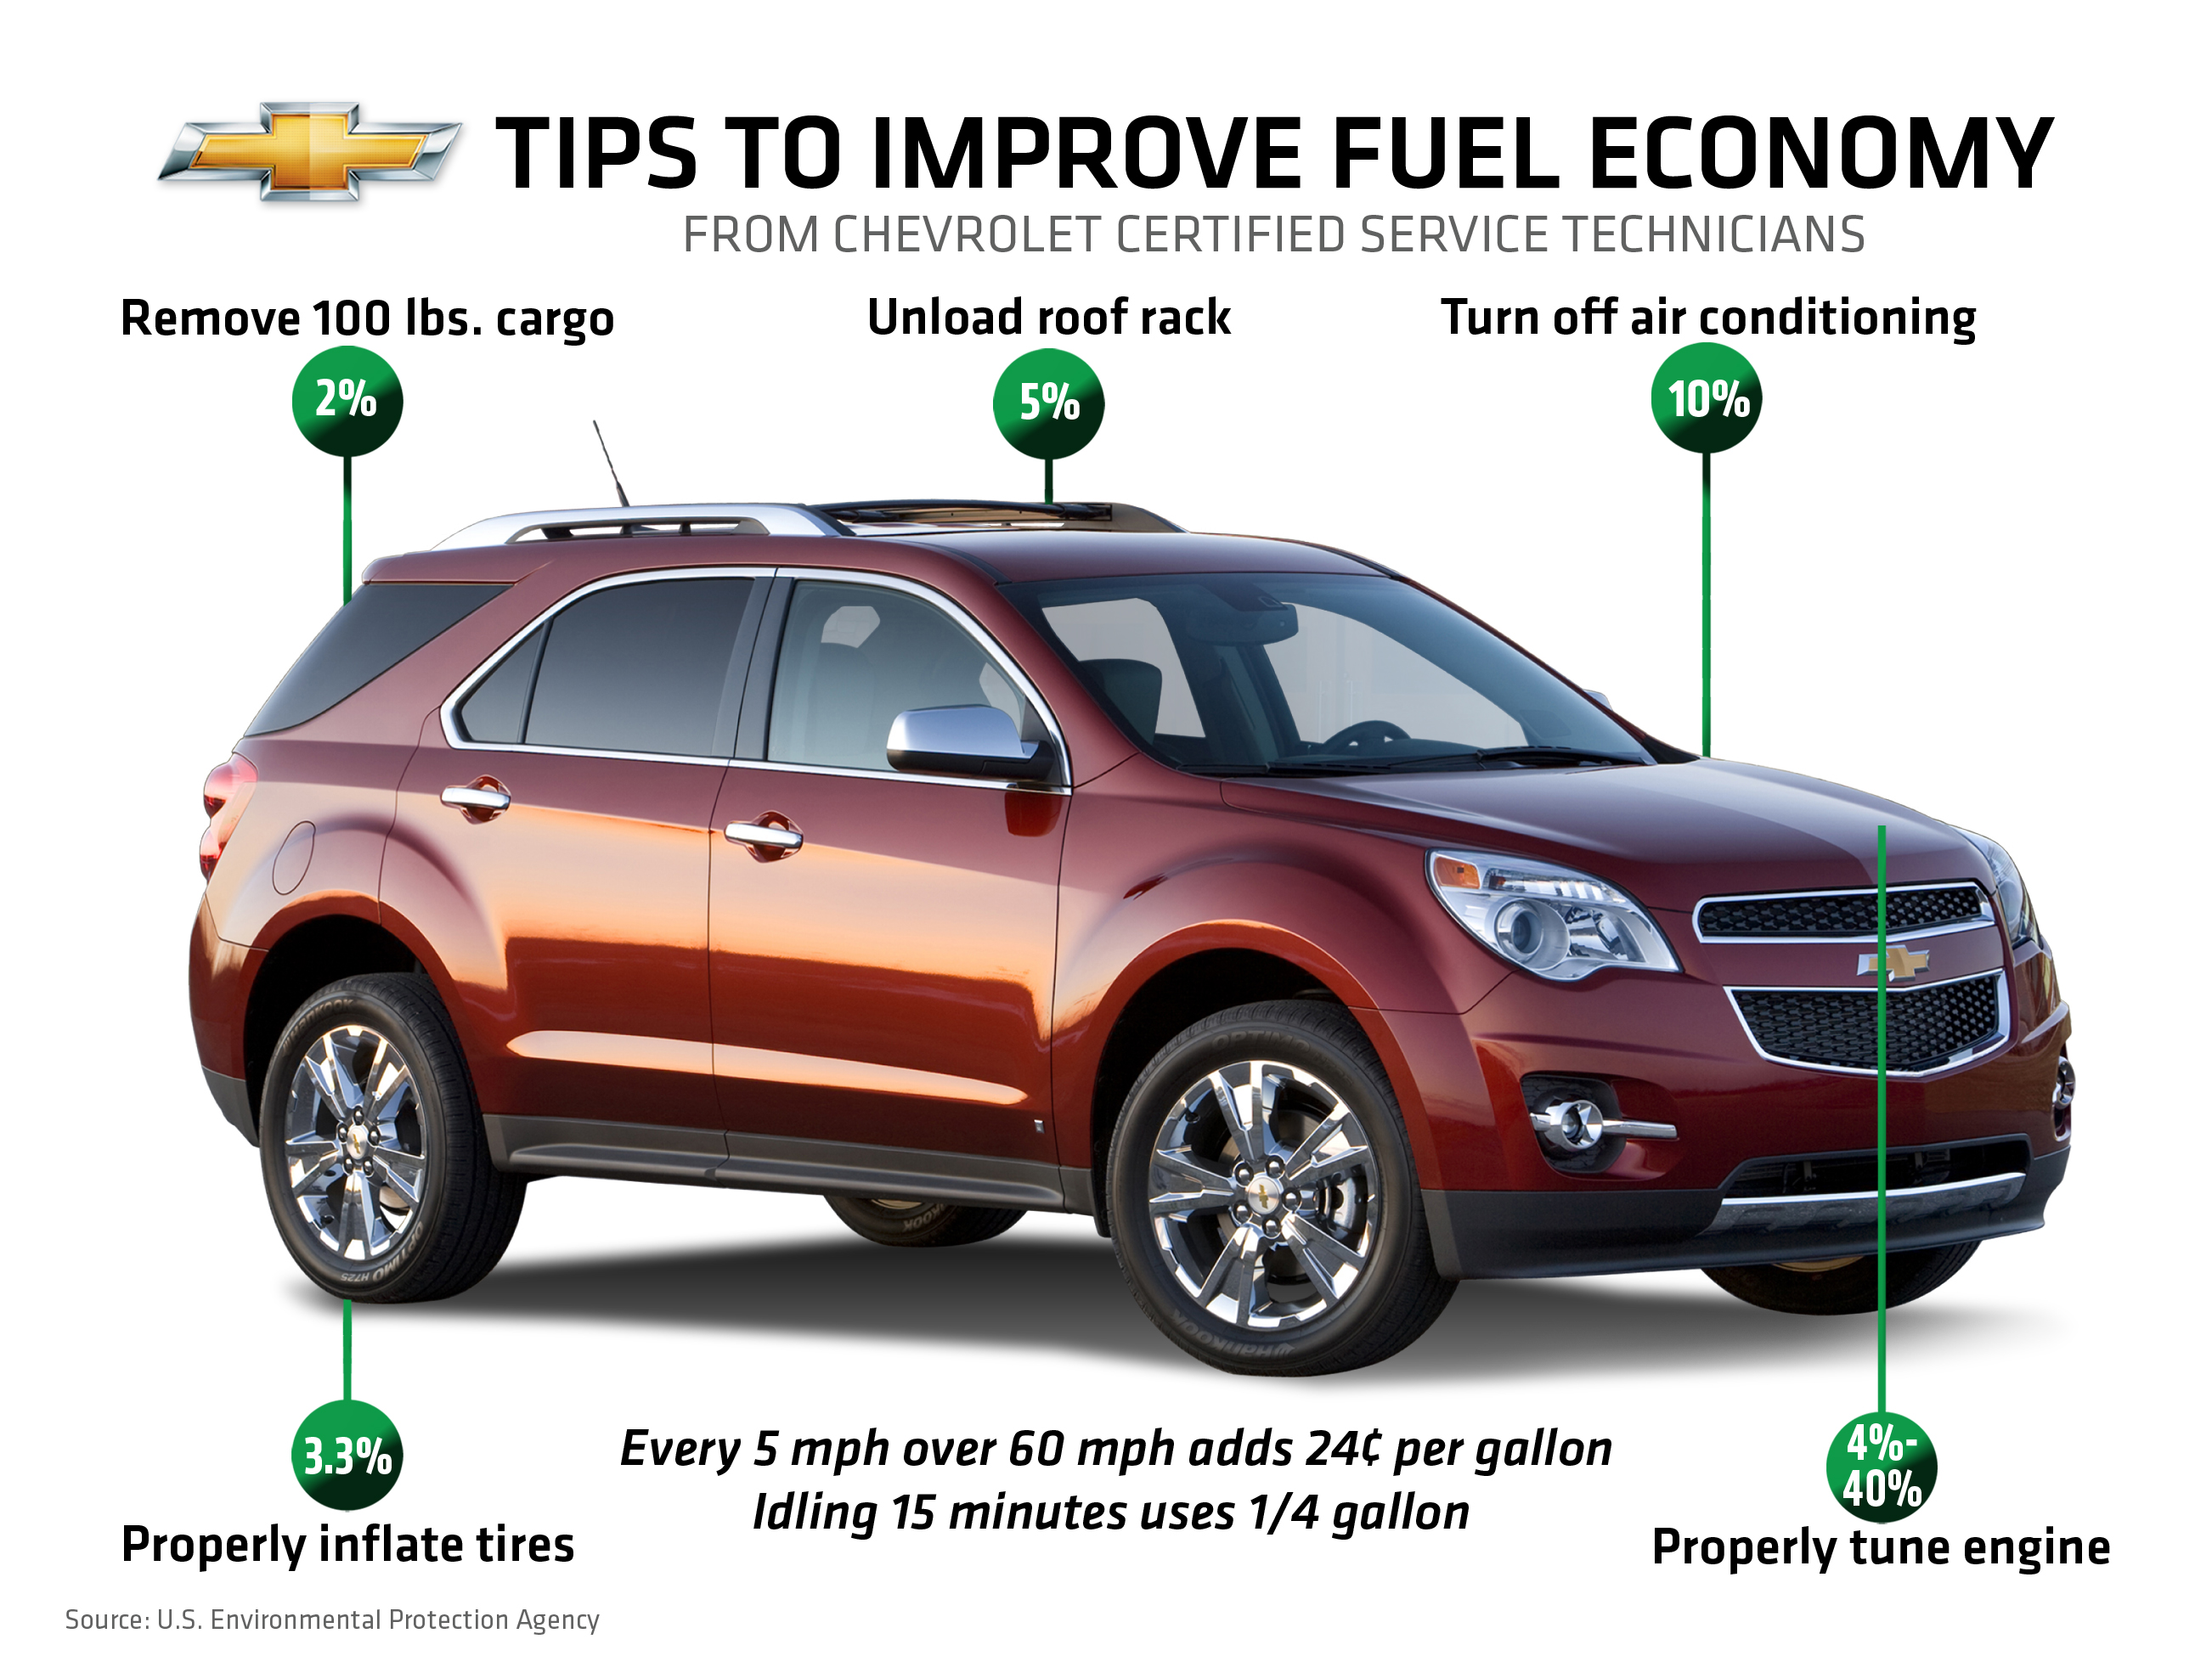 Tune Up, Slow Down and Unpack to Squeeze Extra MPG